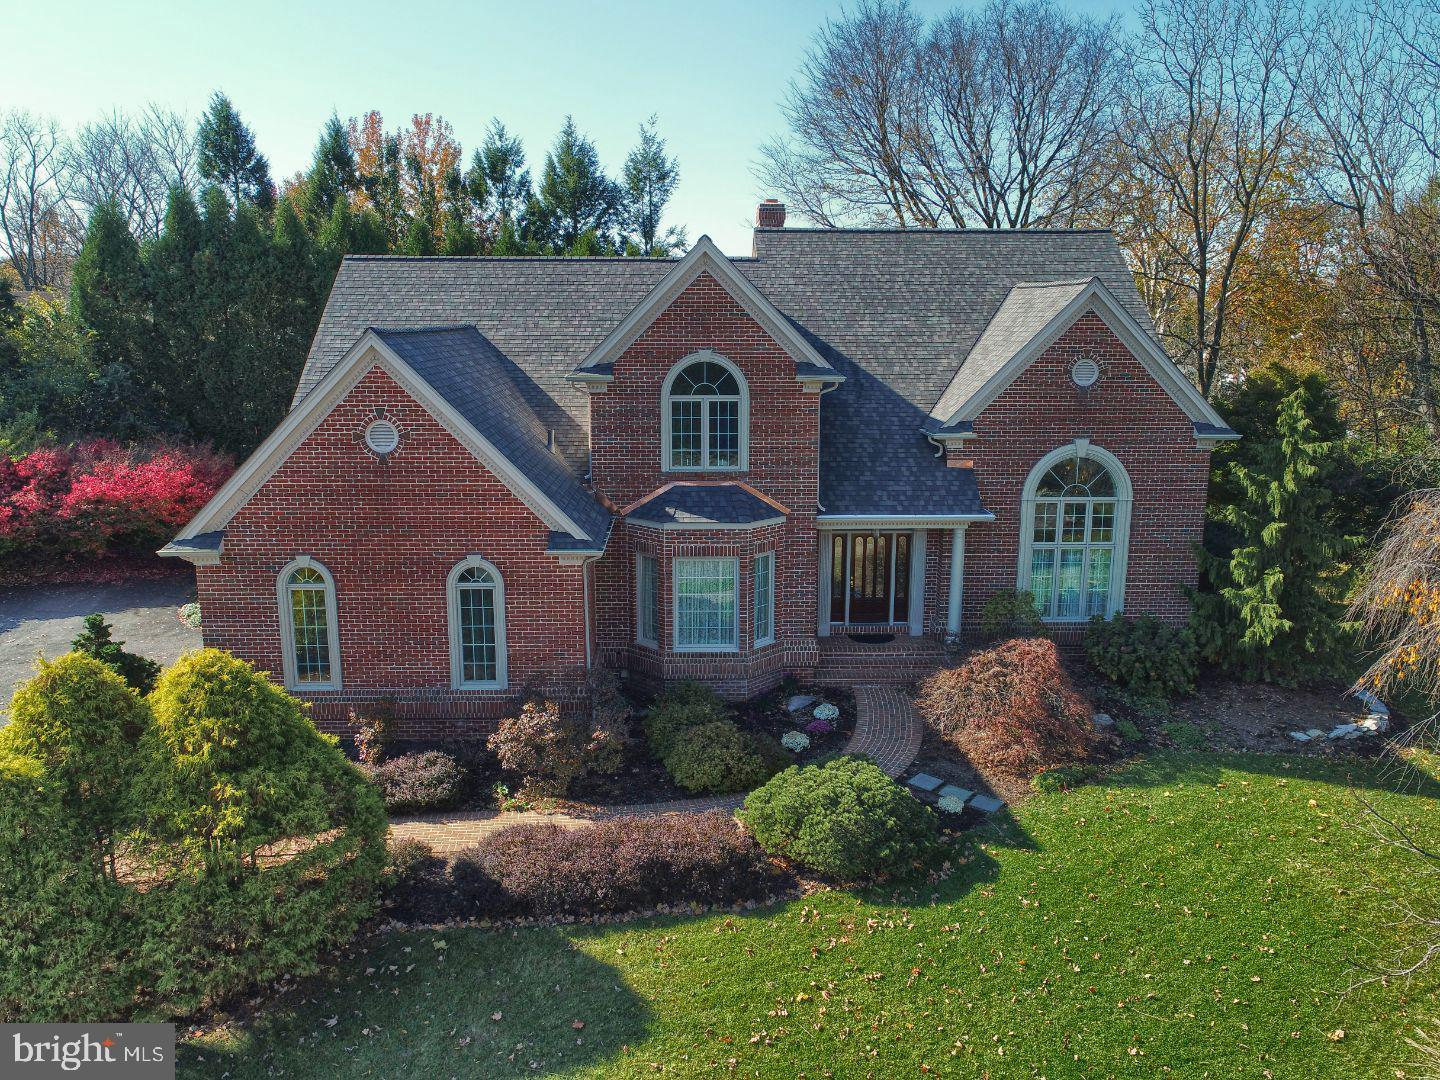 353 GREENBRIAR COURT, WYOMISSING, PA 19610